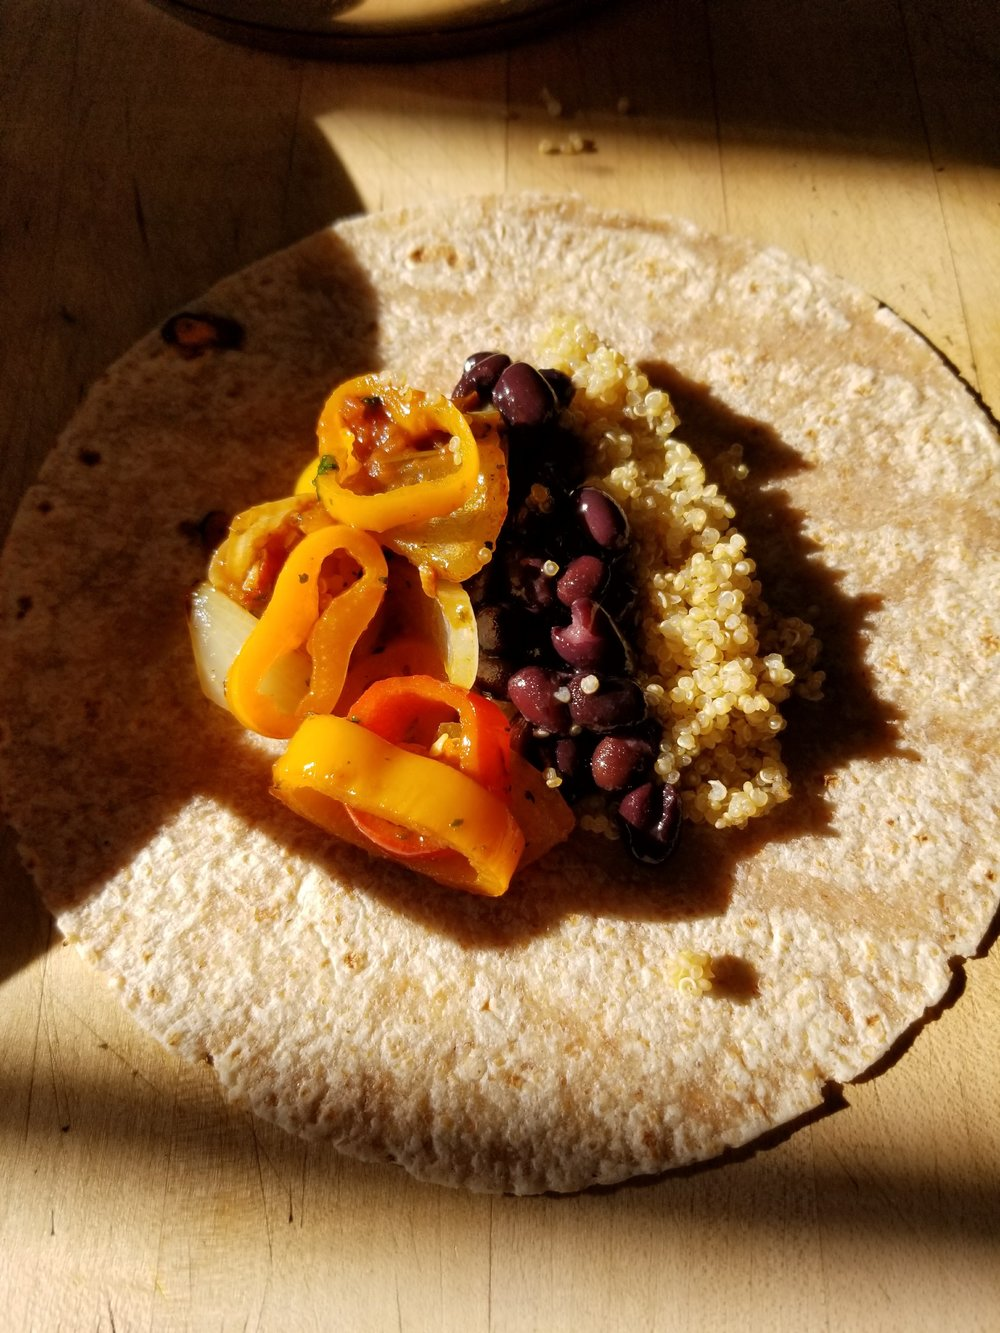 Line up Quinoa, Black Beans, and veggies on your tortilla